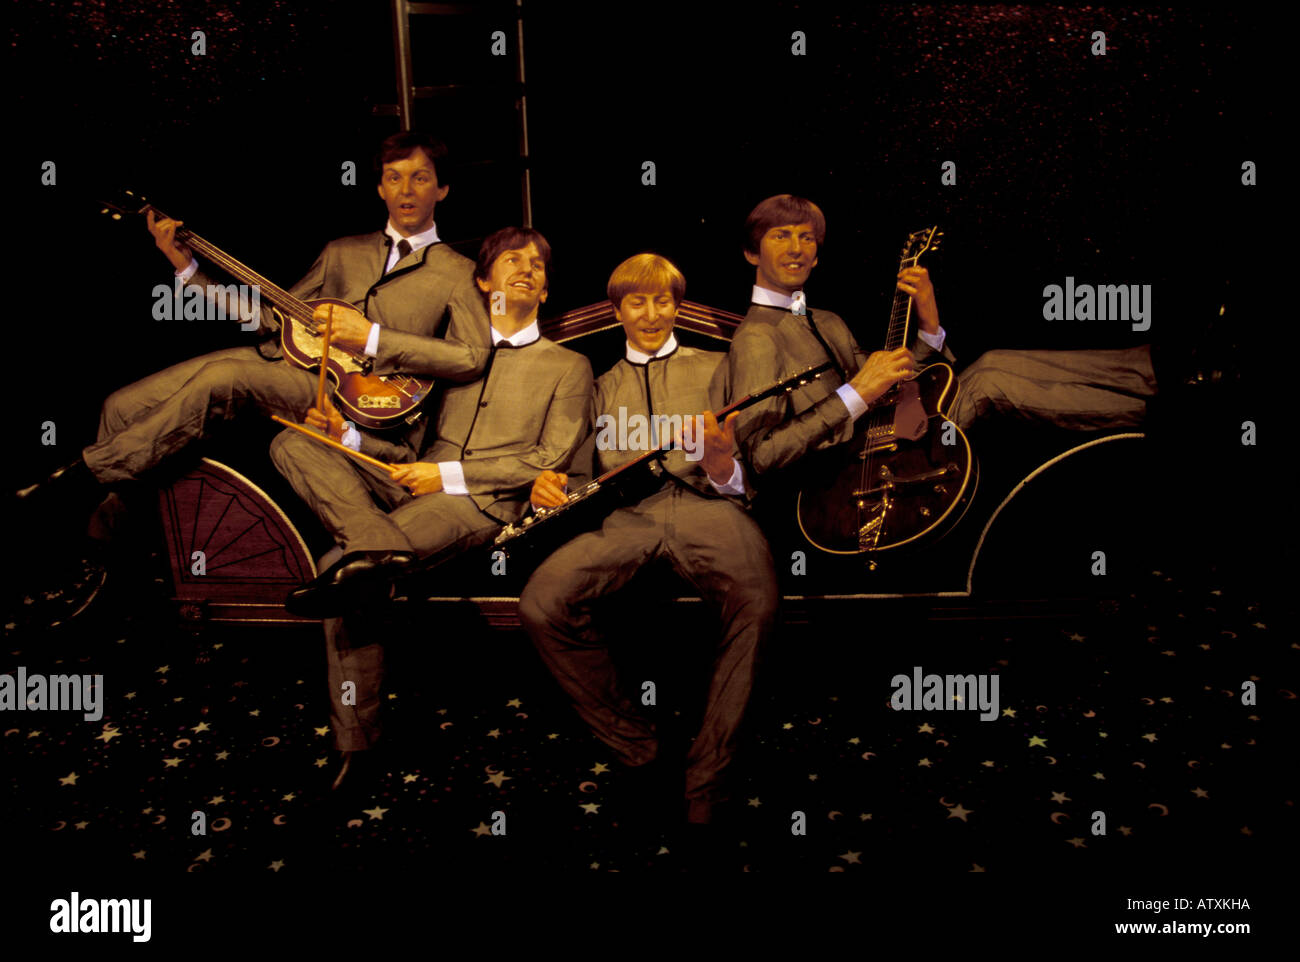 The Beatles statue Madame Tussaud s Wax Museum Victoria Peak Hong Kong China Asia - Stock Image